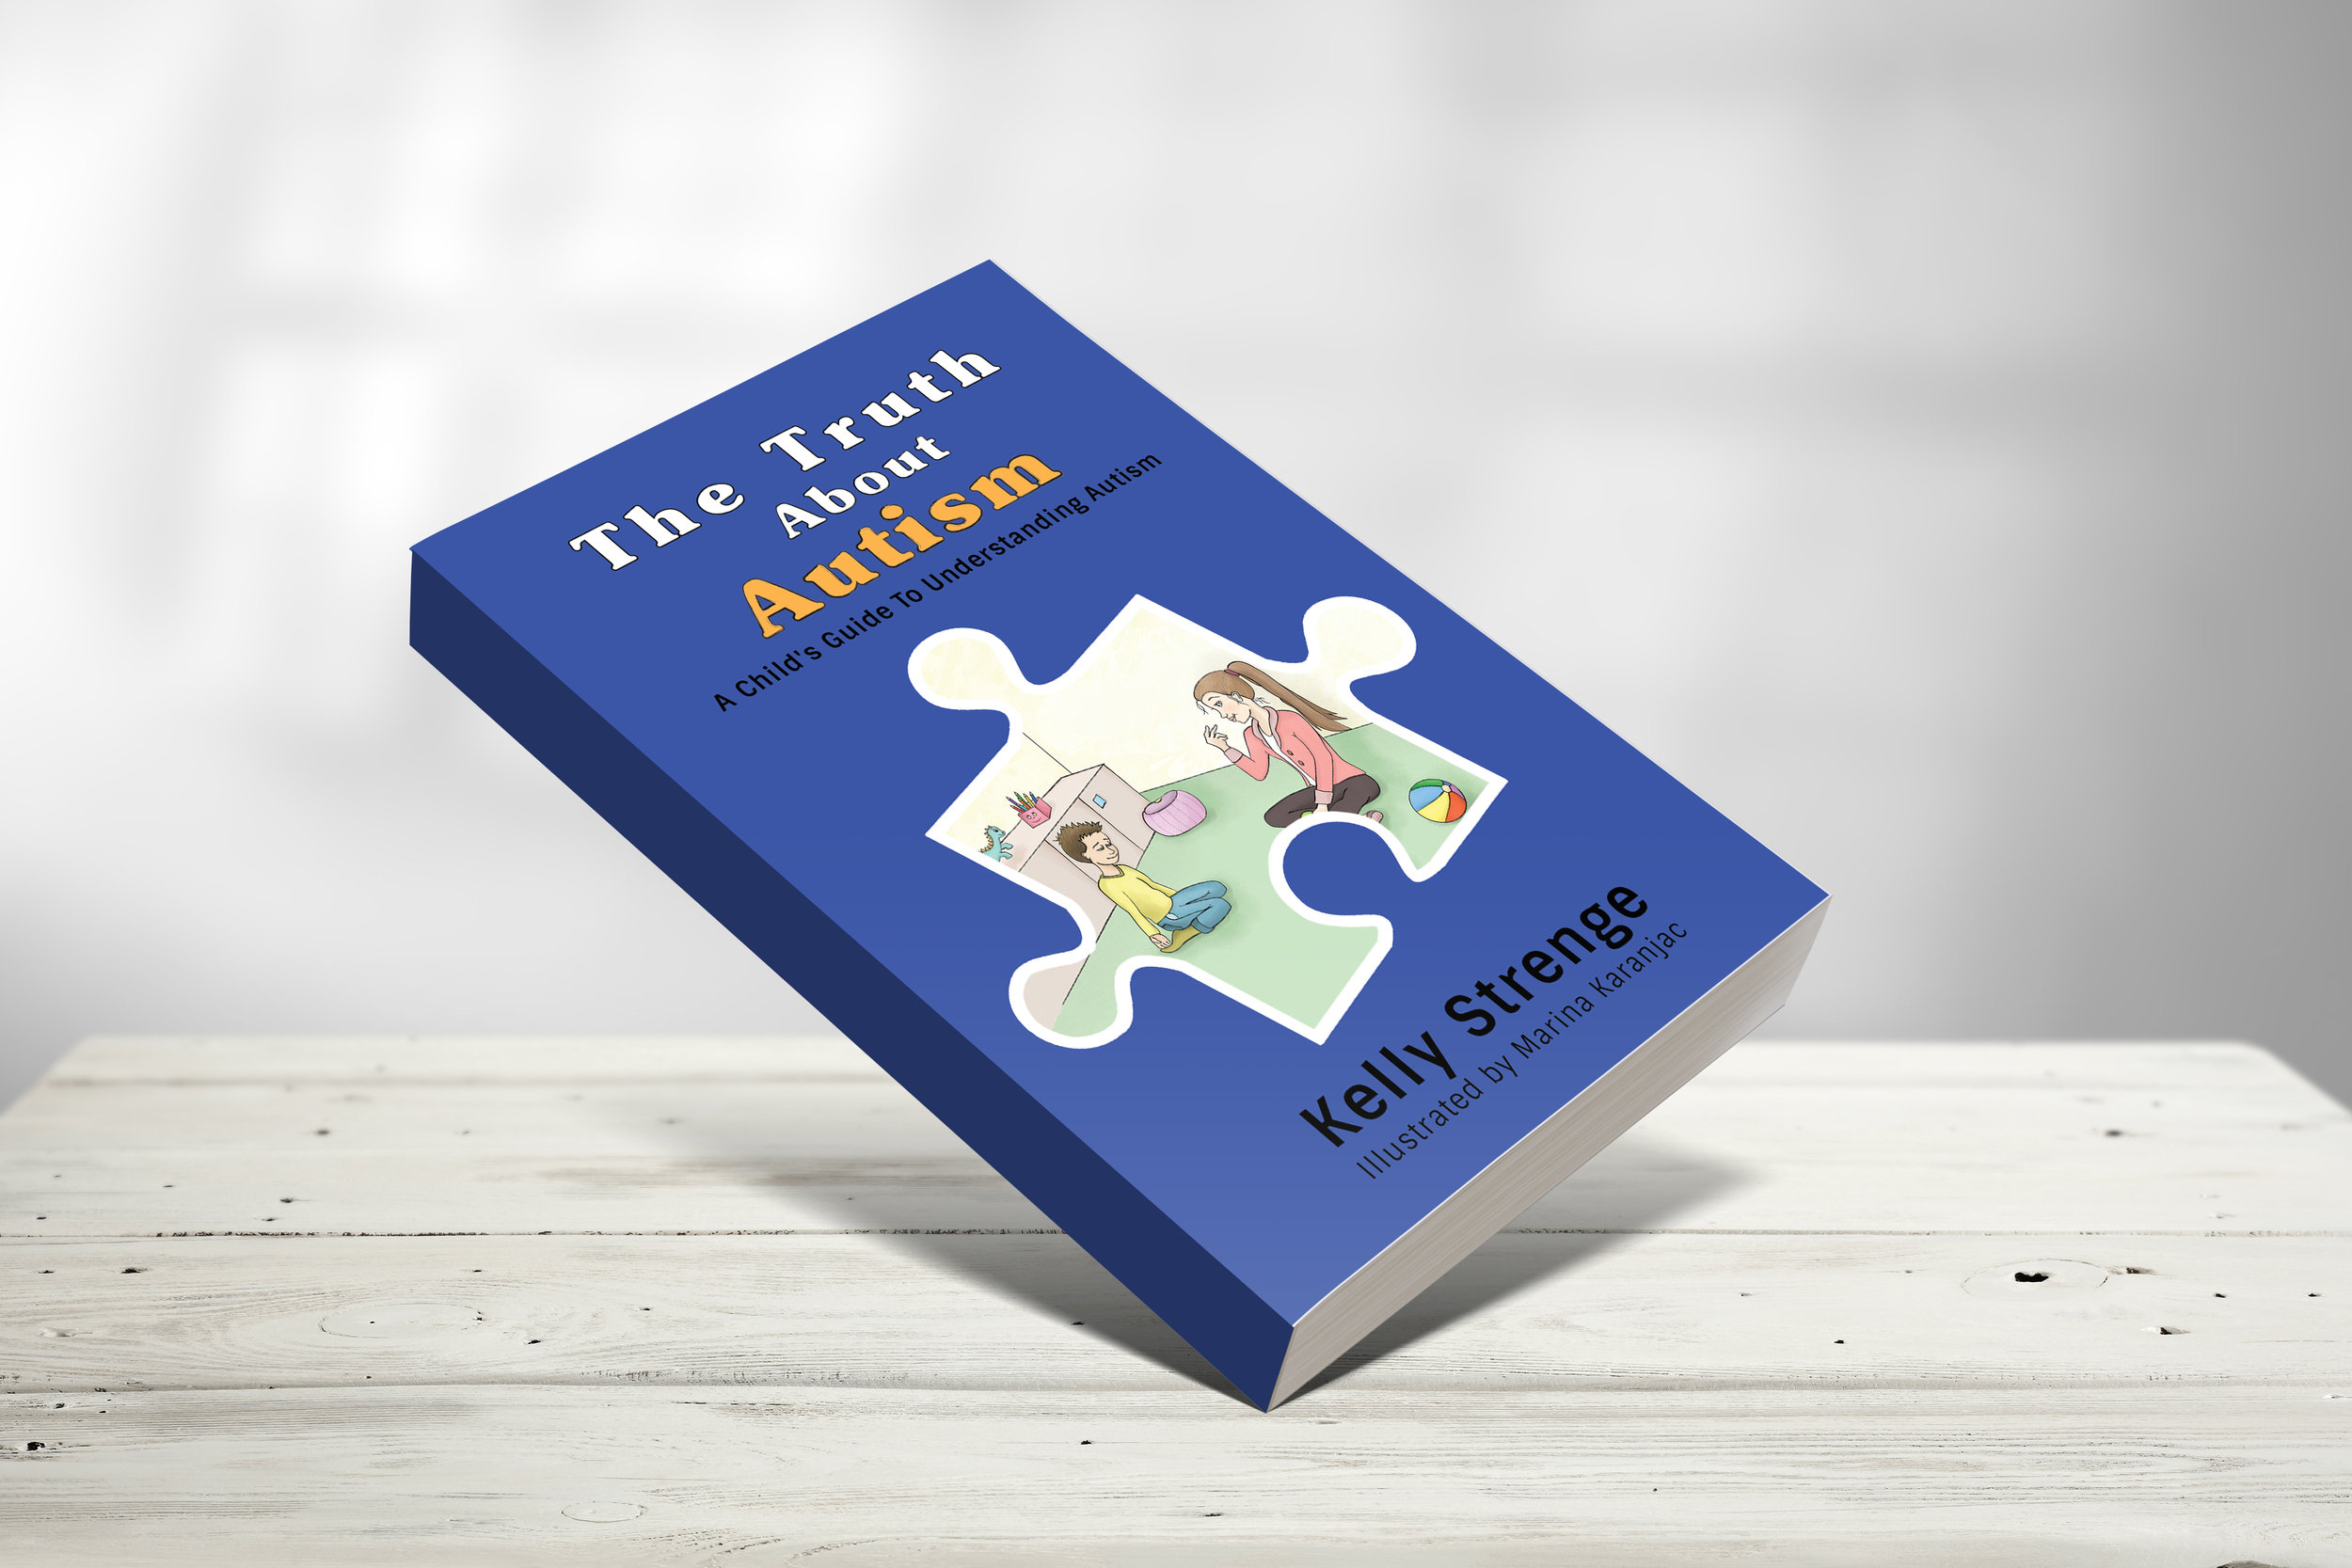 """The Truth About Autism - How do you explain autism to kids? This book is the answer….The Truth About Autism educates children in a very honest, light-hearted, and inspiring way. In this book kids will discover what autism is, common symptoms/behaviors of autistic children, challenges that children with autism spectrum disorders may encounter, ways to possibly improve symptoms of autism, being """"on the spectrum"""" doesn't define a person, and there are positive aspects of the experience. This book works perfectly whether it is your child that was diagnosed or someone they know."""